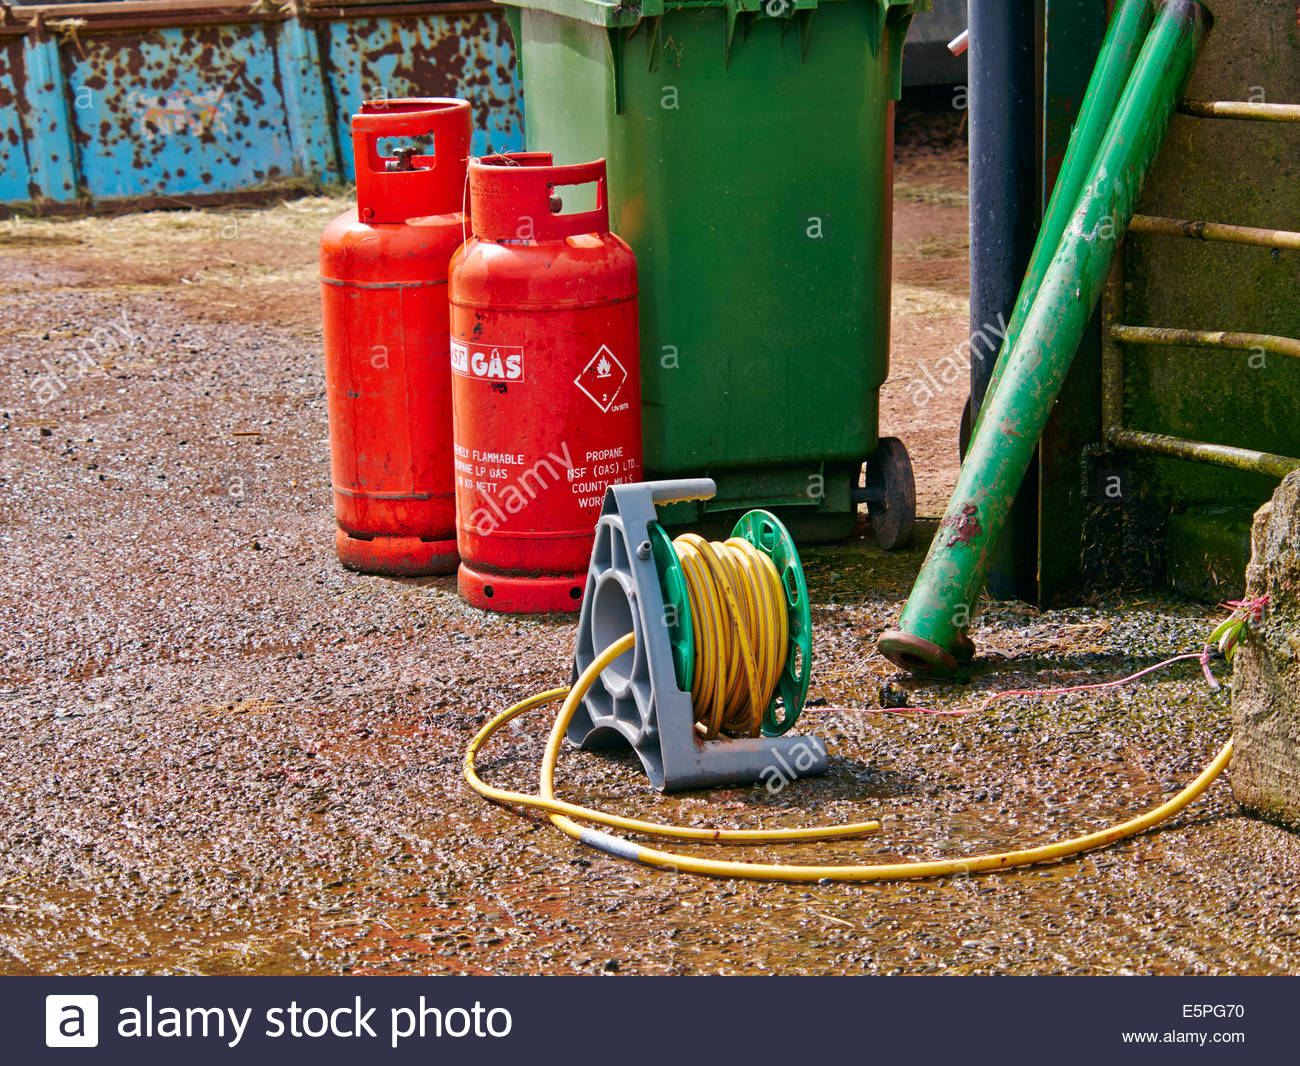 two red propane gas bottles and a yellow hosepipe reel on a farmyard uk - Stock Image